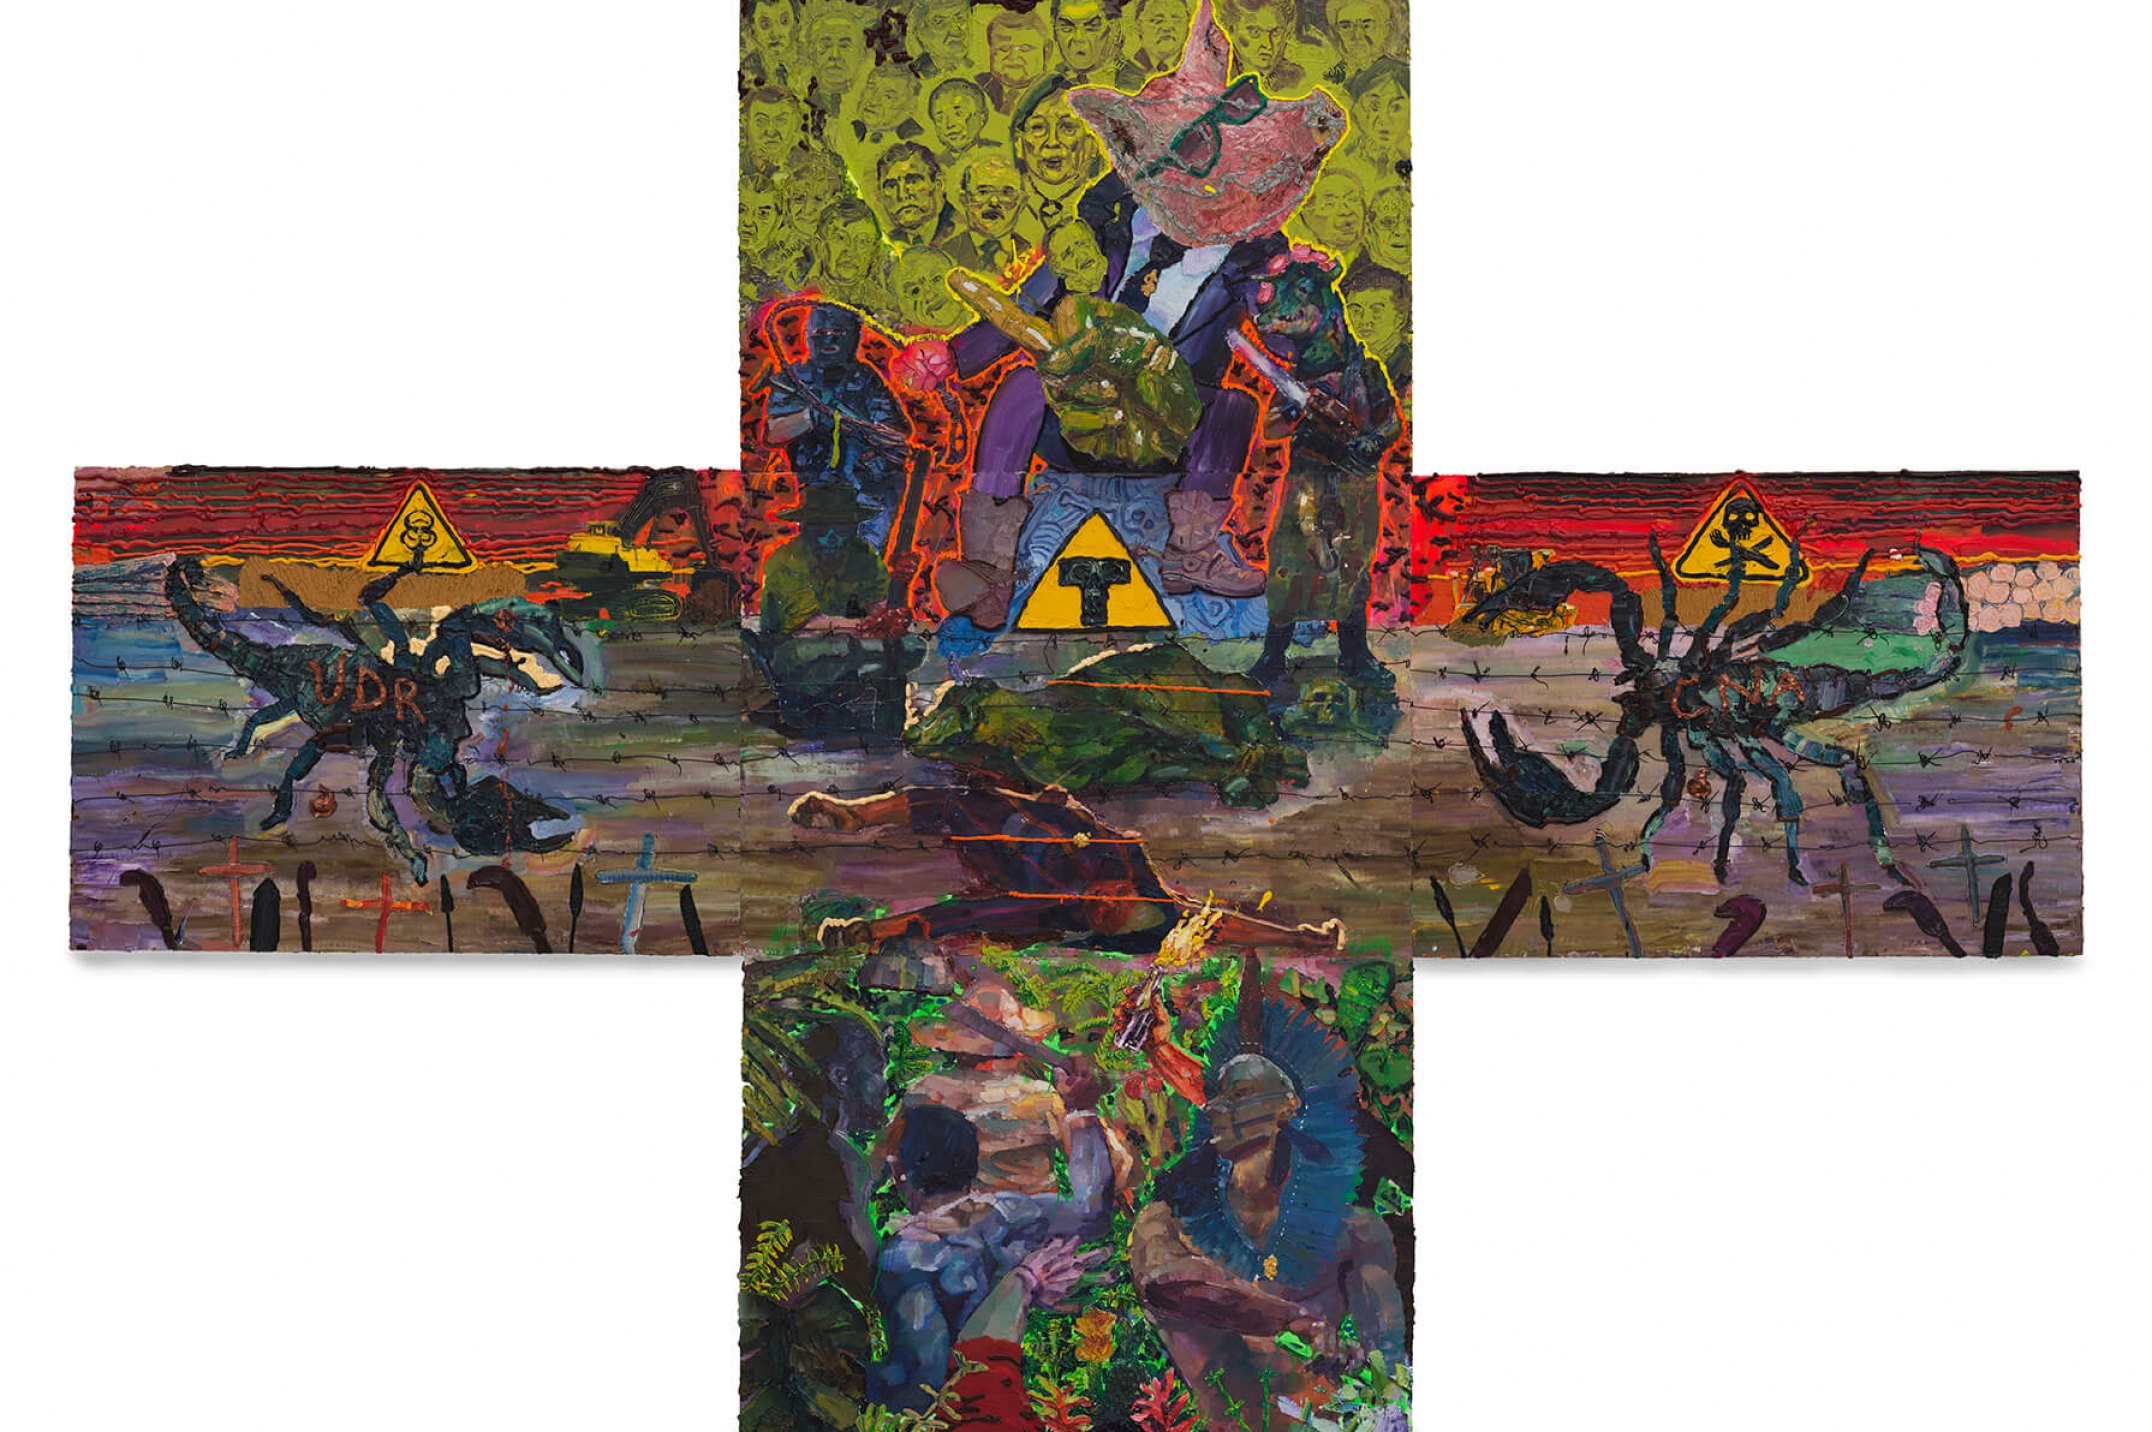 Thiago Martins de Melo,&nbsp;<em>The Cross and the Throne of Neo-Colonelcy</em>, 2013, oil on canvas, 390 × 540 cm - Mendes Wood DM